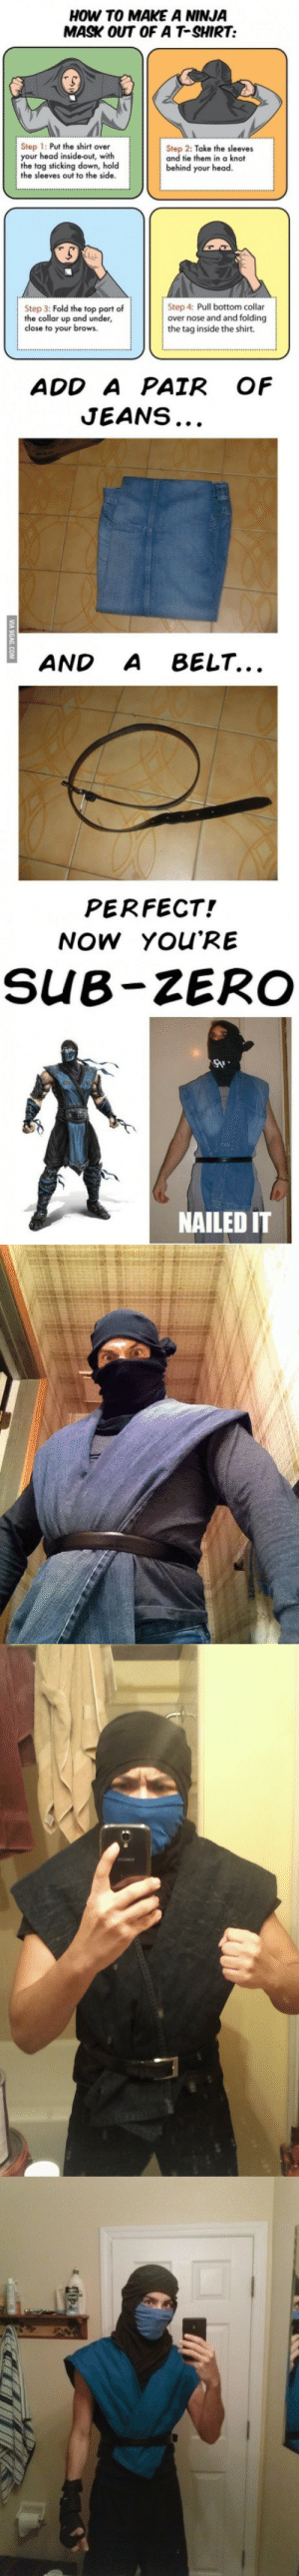 trill-la-kill: m-muscle-chan:  betenoiresmash:  How to suddenly become Sub-Zero of Mortal Kombat…    LMFAO RAIDEN : HOW TO MAKE A NINJA  MASK OUT OF A T-SHIRT:  Step 1: Put the shirt over  your head inside-out, with  the tag sticking down, hold  the sleeves out to the side  Step 2: Take the sleeves  and tie them in a knot  behind your head  Step 3: Fold the top part of  the collar up and under,  close to your brows.  Step 4: Pull bottom collar  over nose and and folding  the tag inside the shirt.  ADD A PAIR OF  JEANS  AND A BELT...  PERFECT!  NOW YOU'RE  SUB-ZERO  骑,  NAILED IT trill-la-kill: m-muscle-chan:  betenoiresmash:  How to suddenly become Sub-Zero of Mortal Kombat…    LMFAO RAIDEN